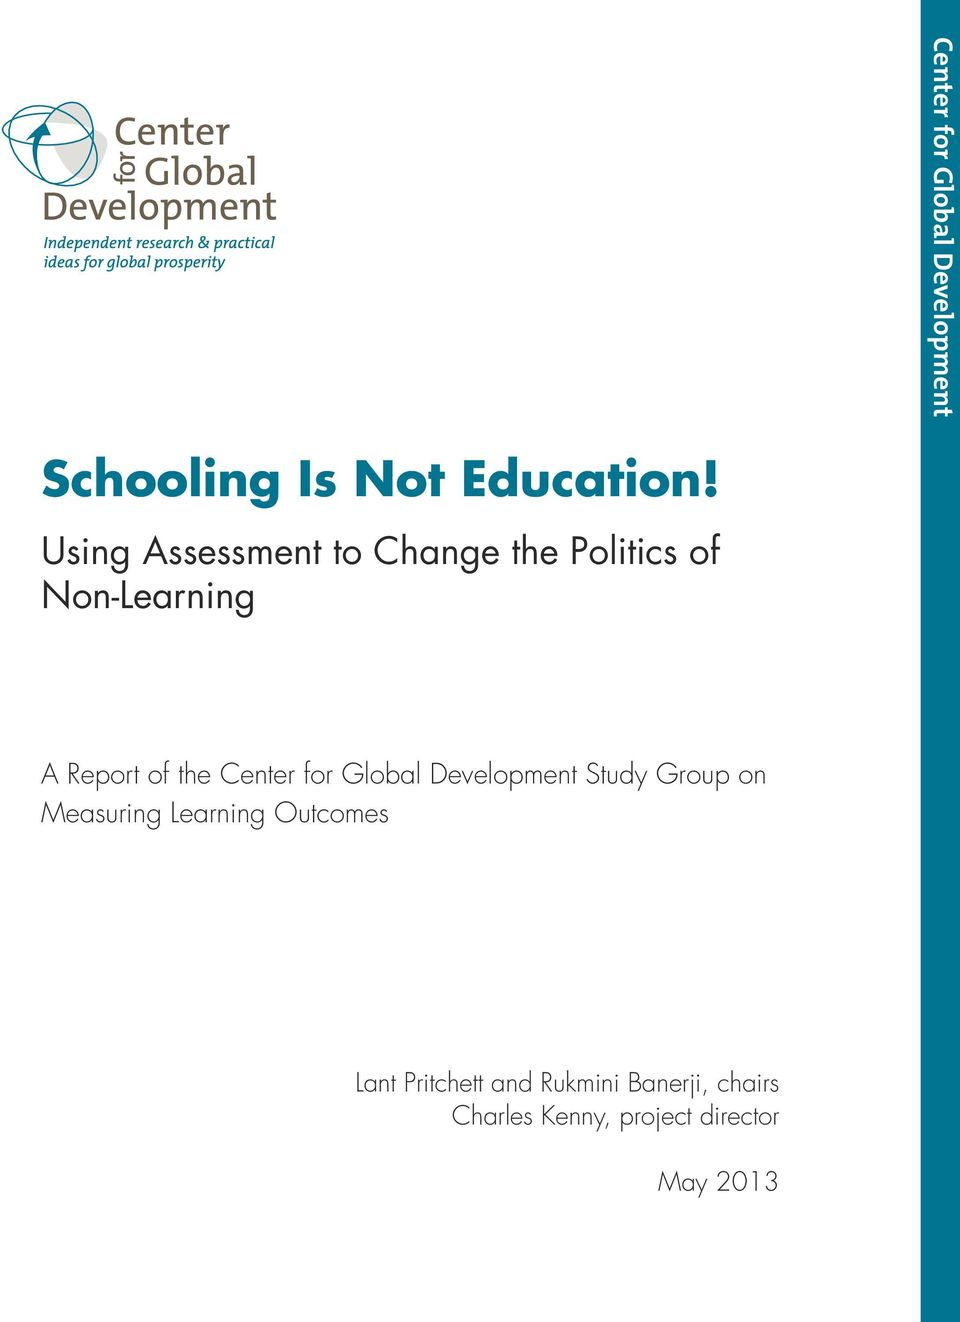 Center for Global Development Study Group on Measuring Learning